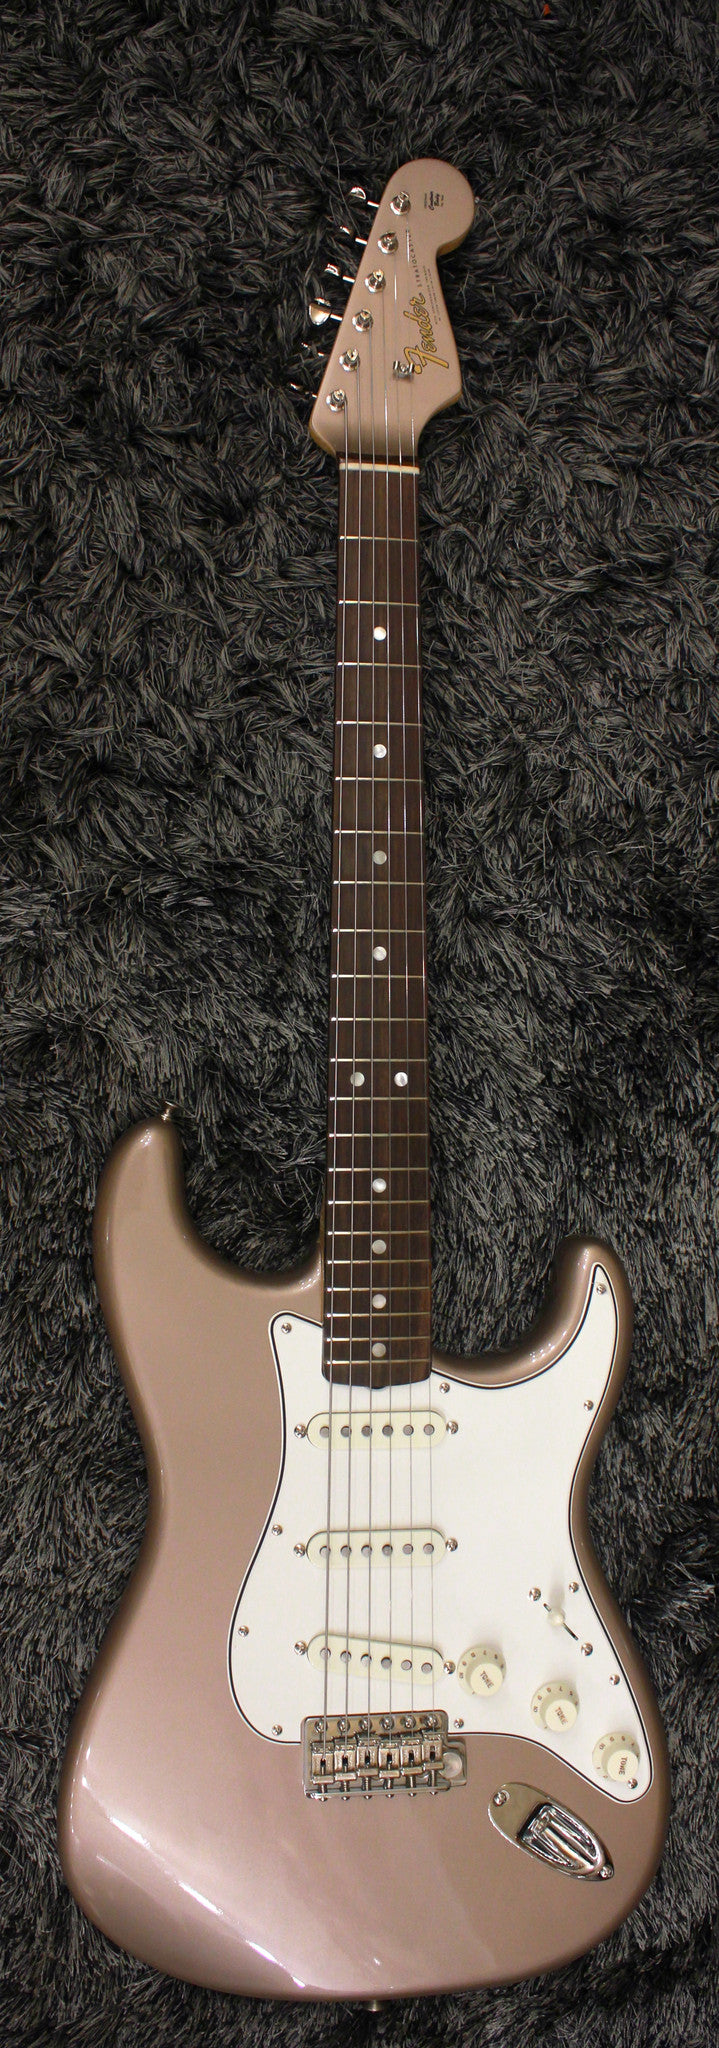 Fender® American Vintage '65 Stratocaster® in Shoreline Gold with Matching Headstock